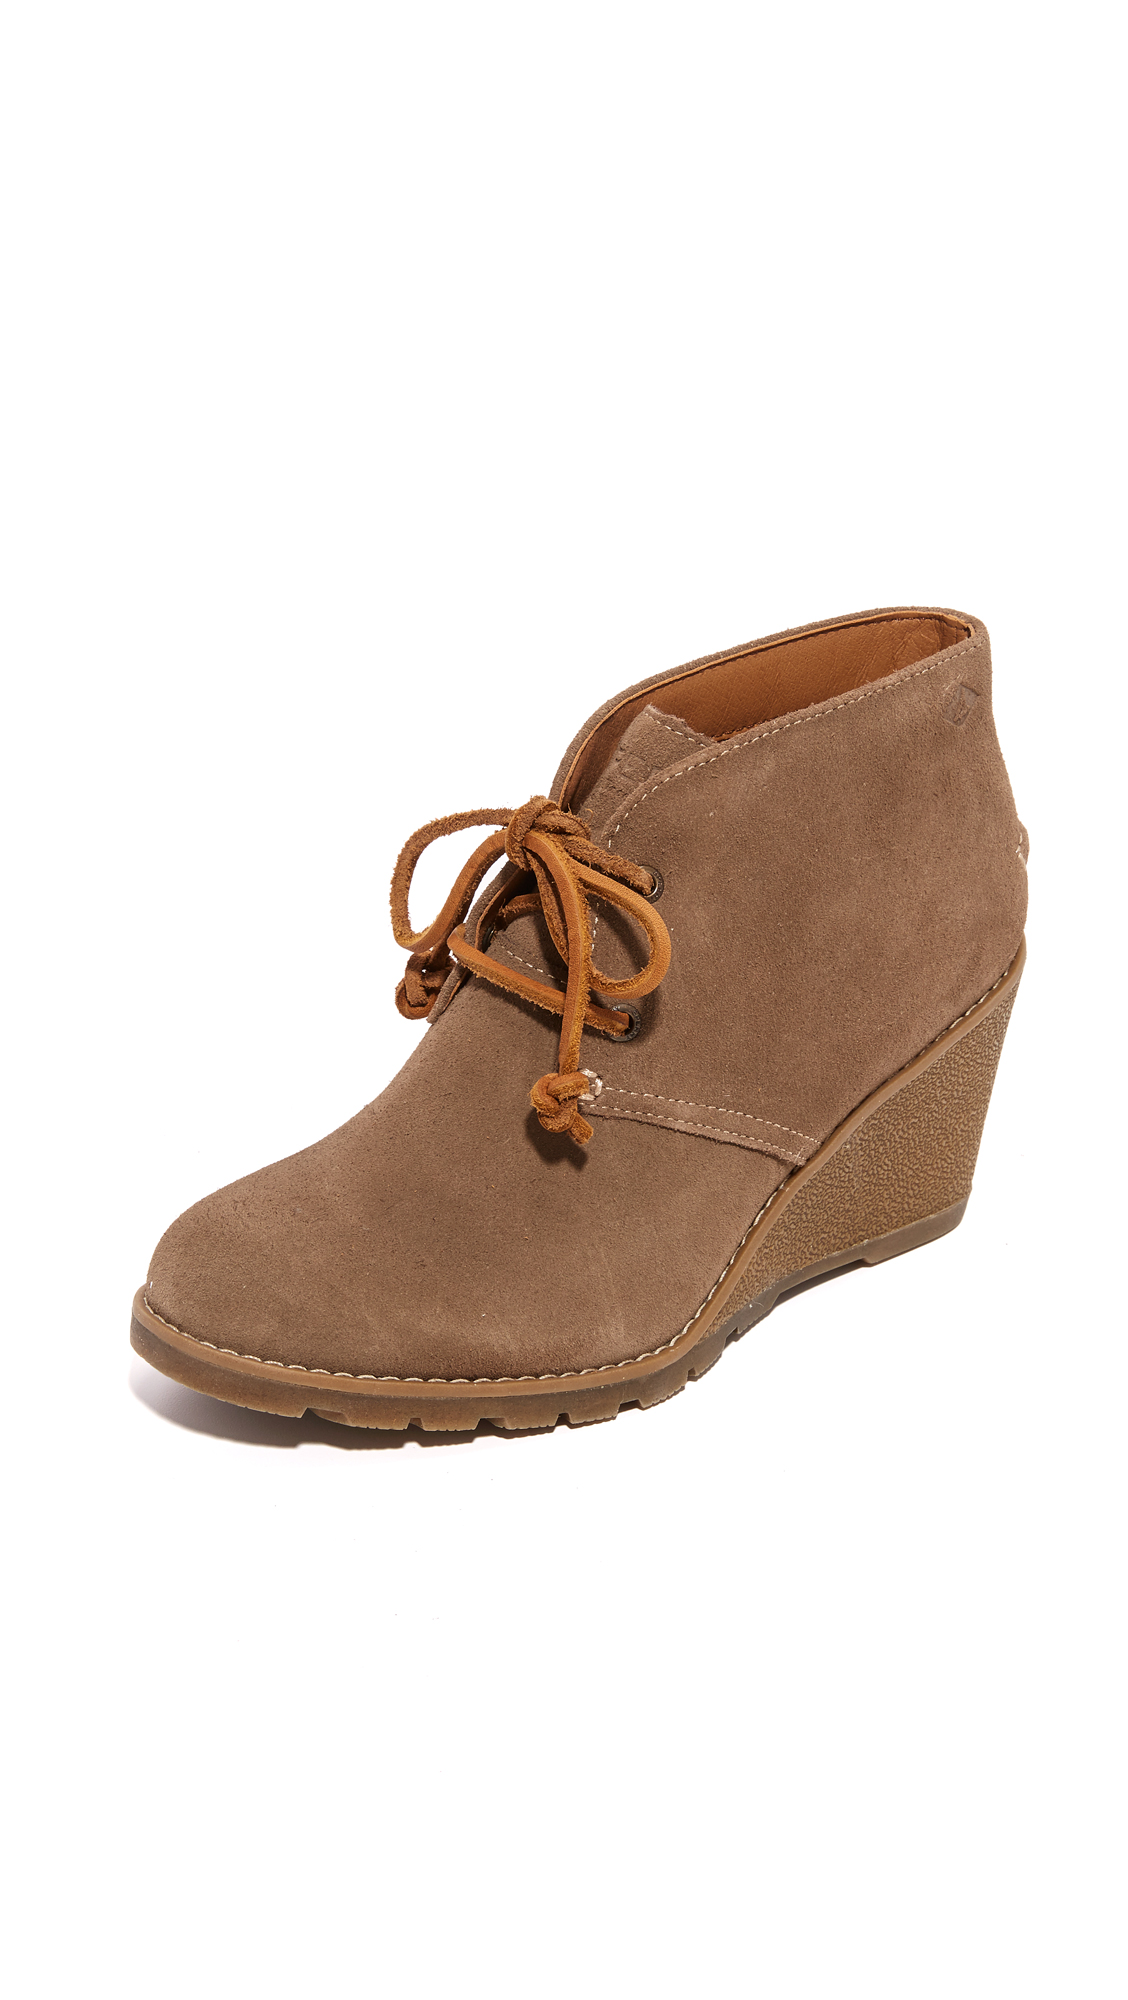 Sperry Stella Prow Wedge Lace Up Booties - Taupe